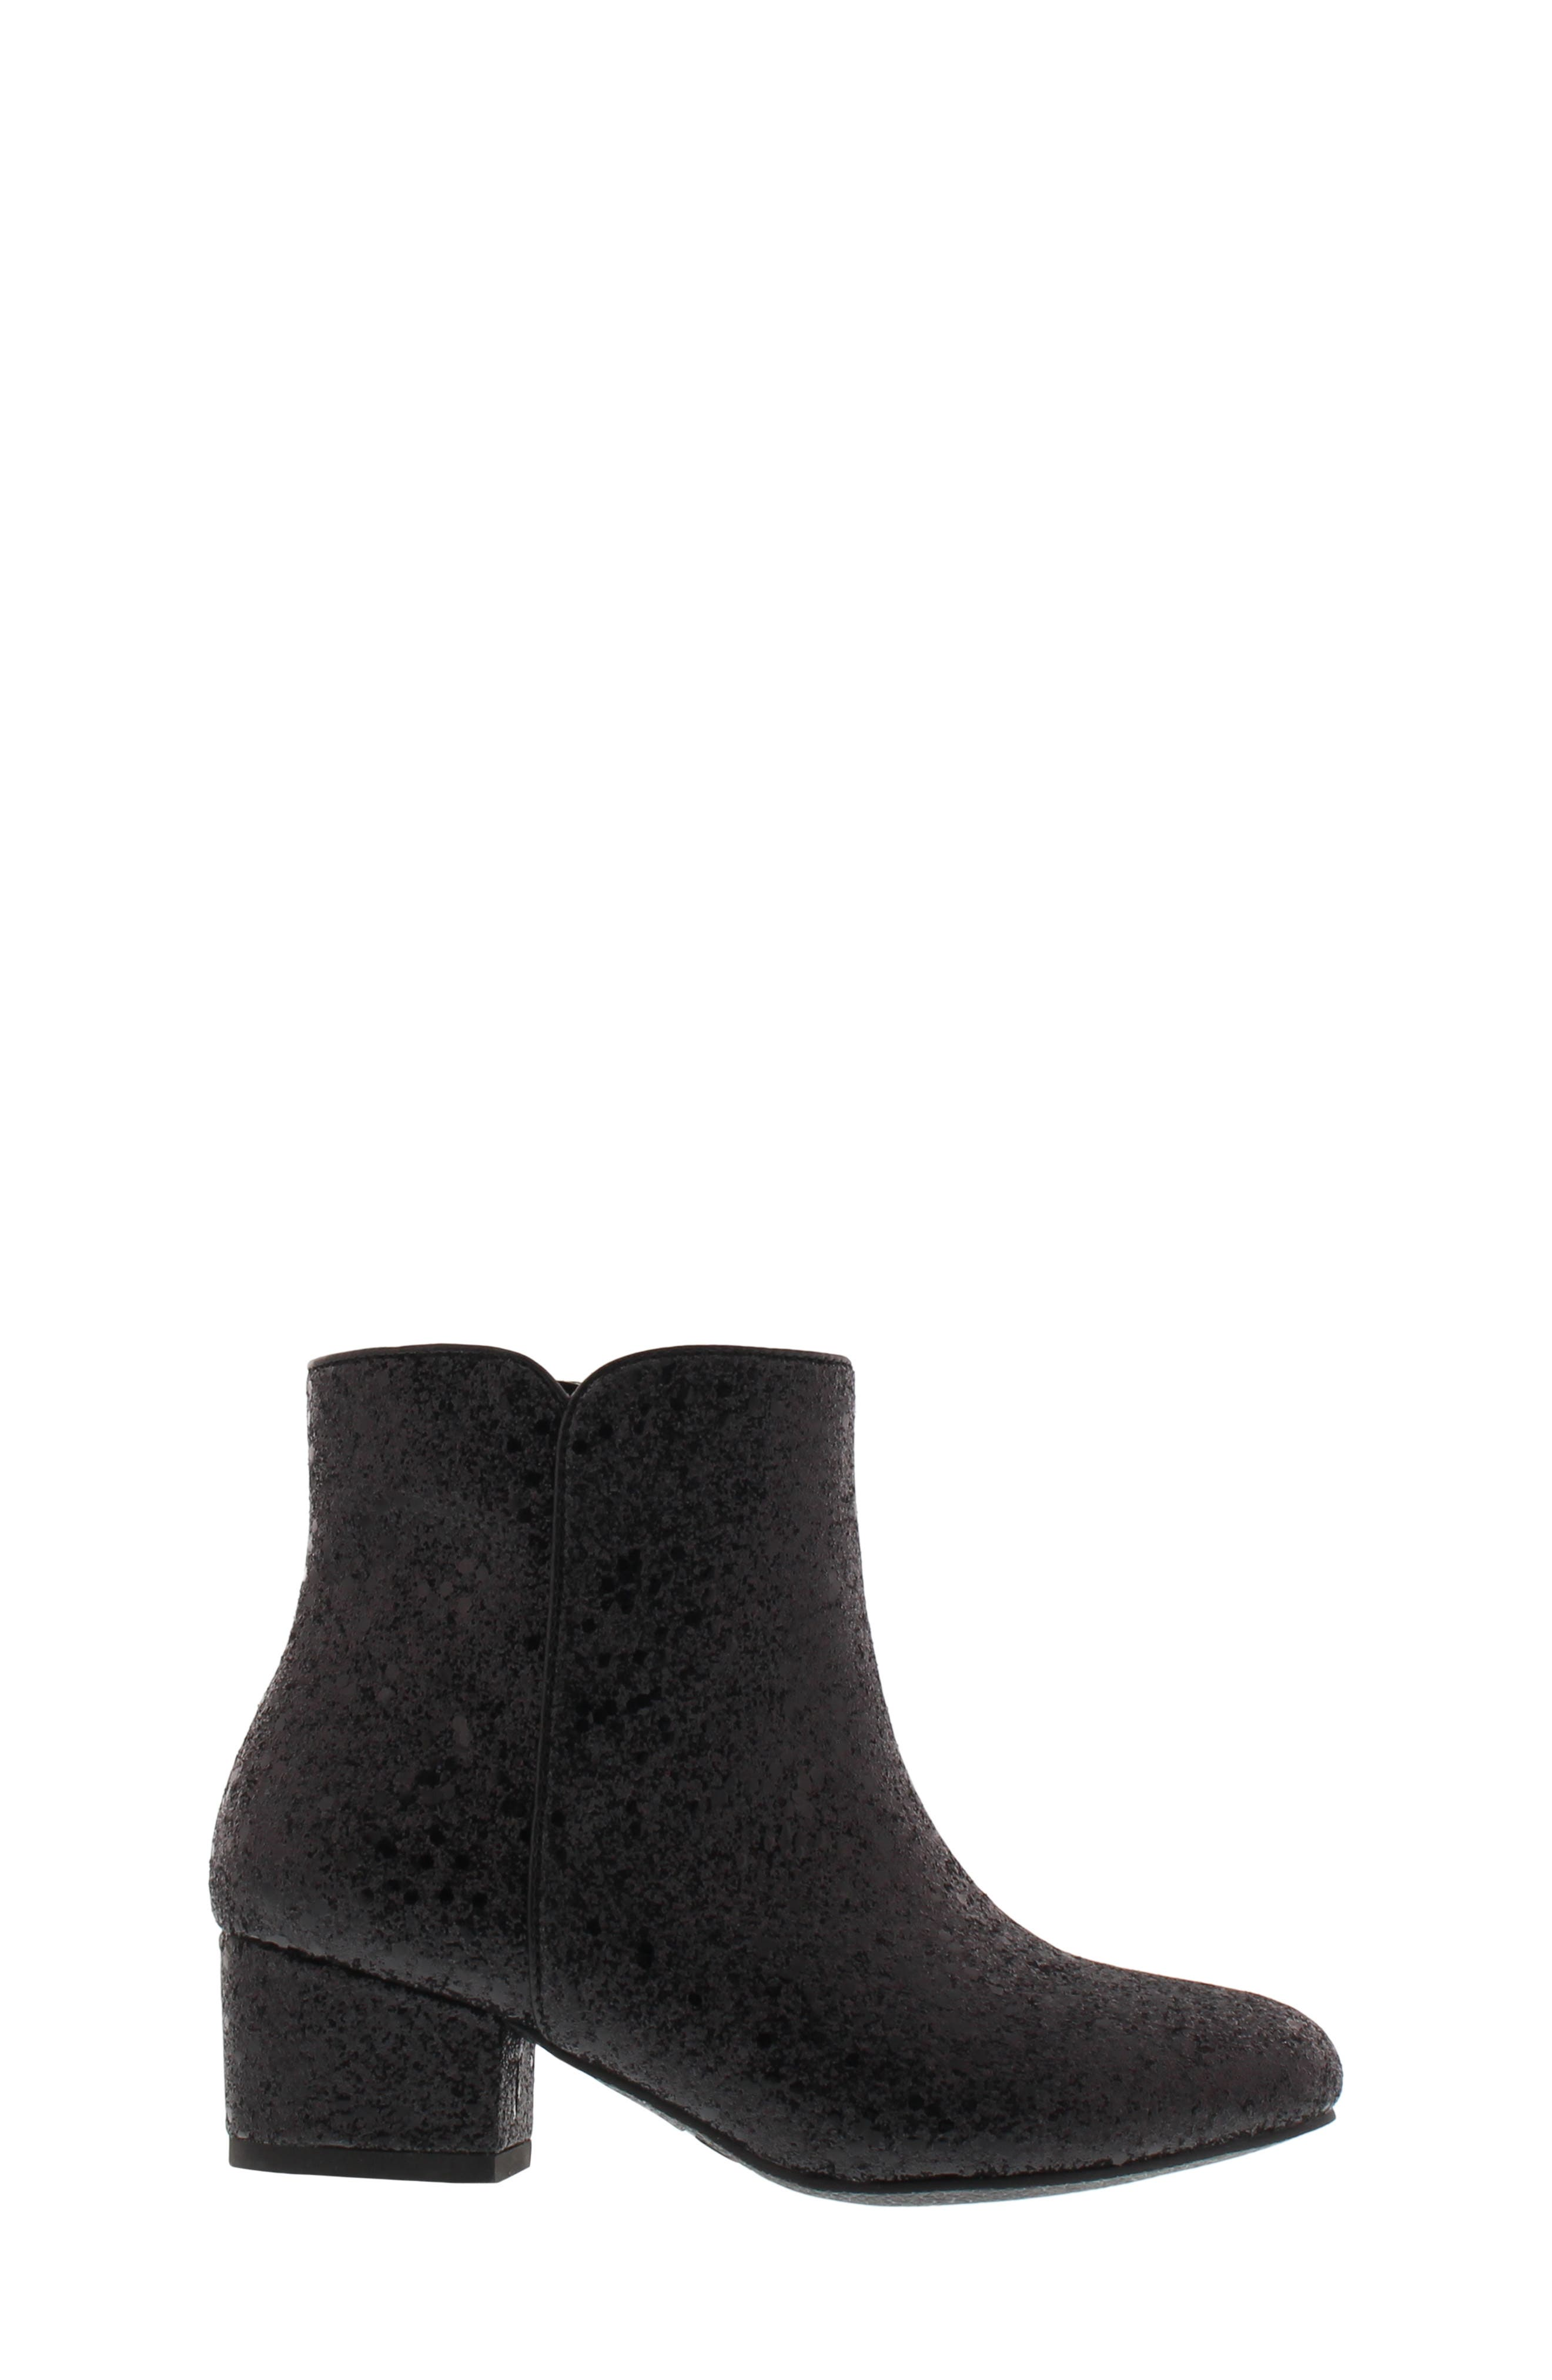 Evelyn Cosmos Bootie,                             Alternate thumbnail 3, color,                             BLACK